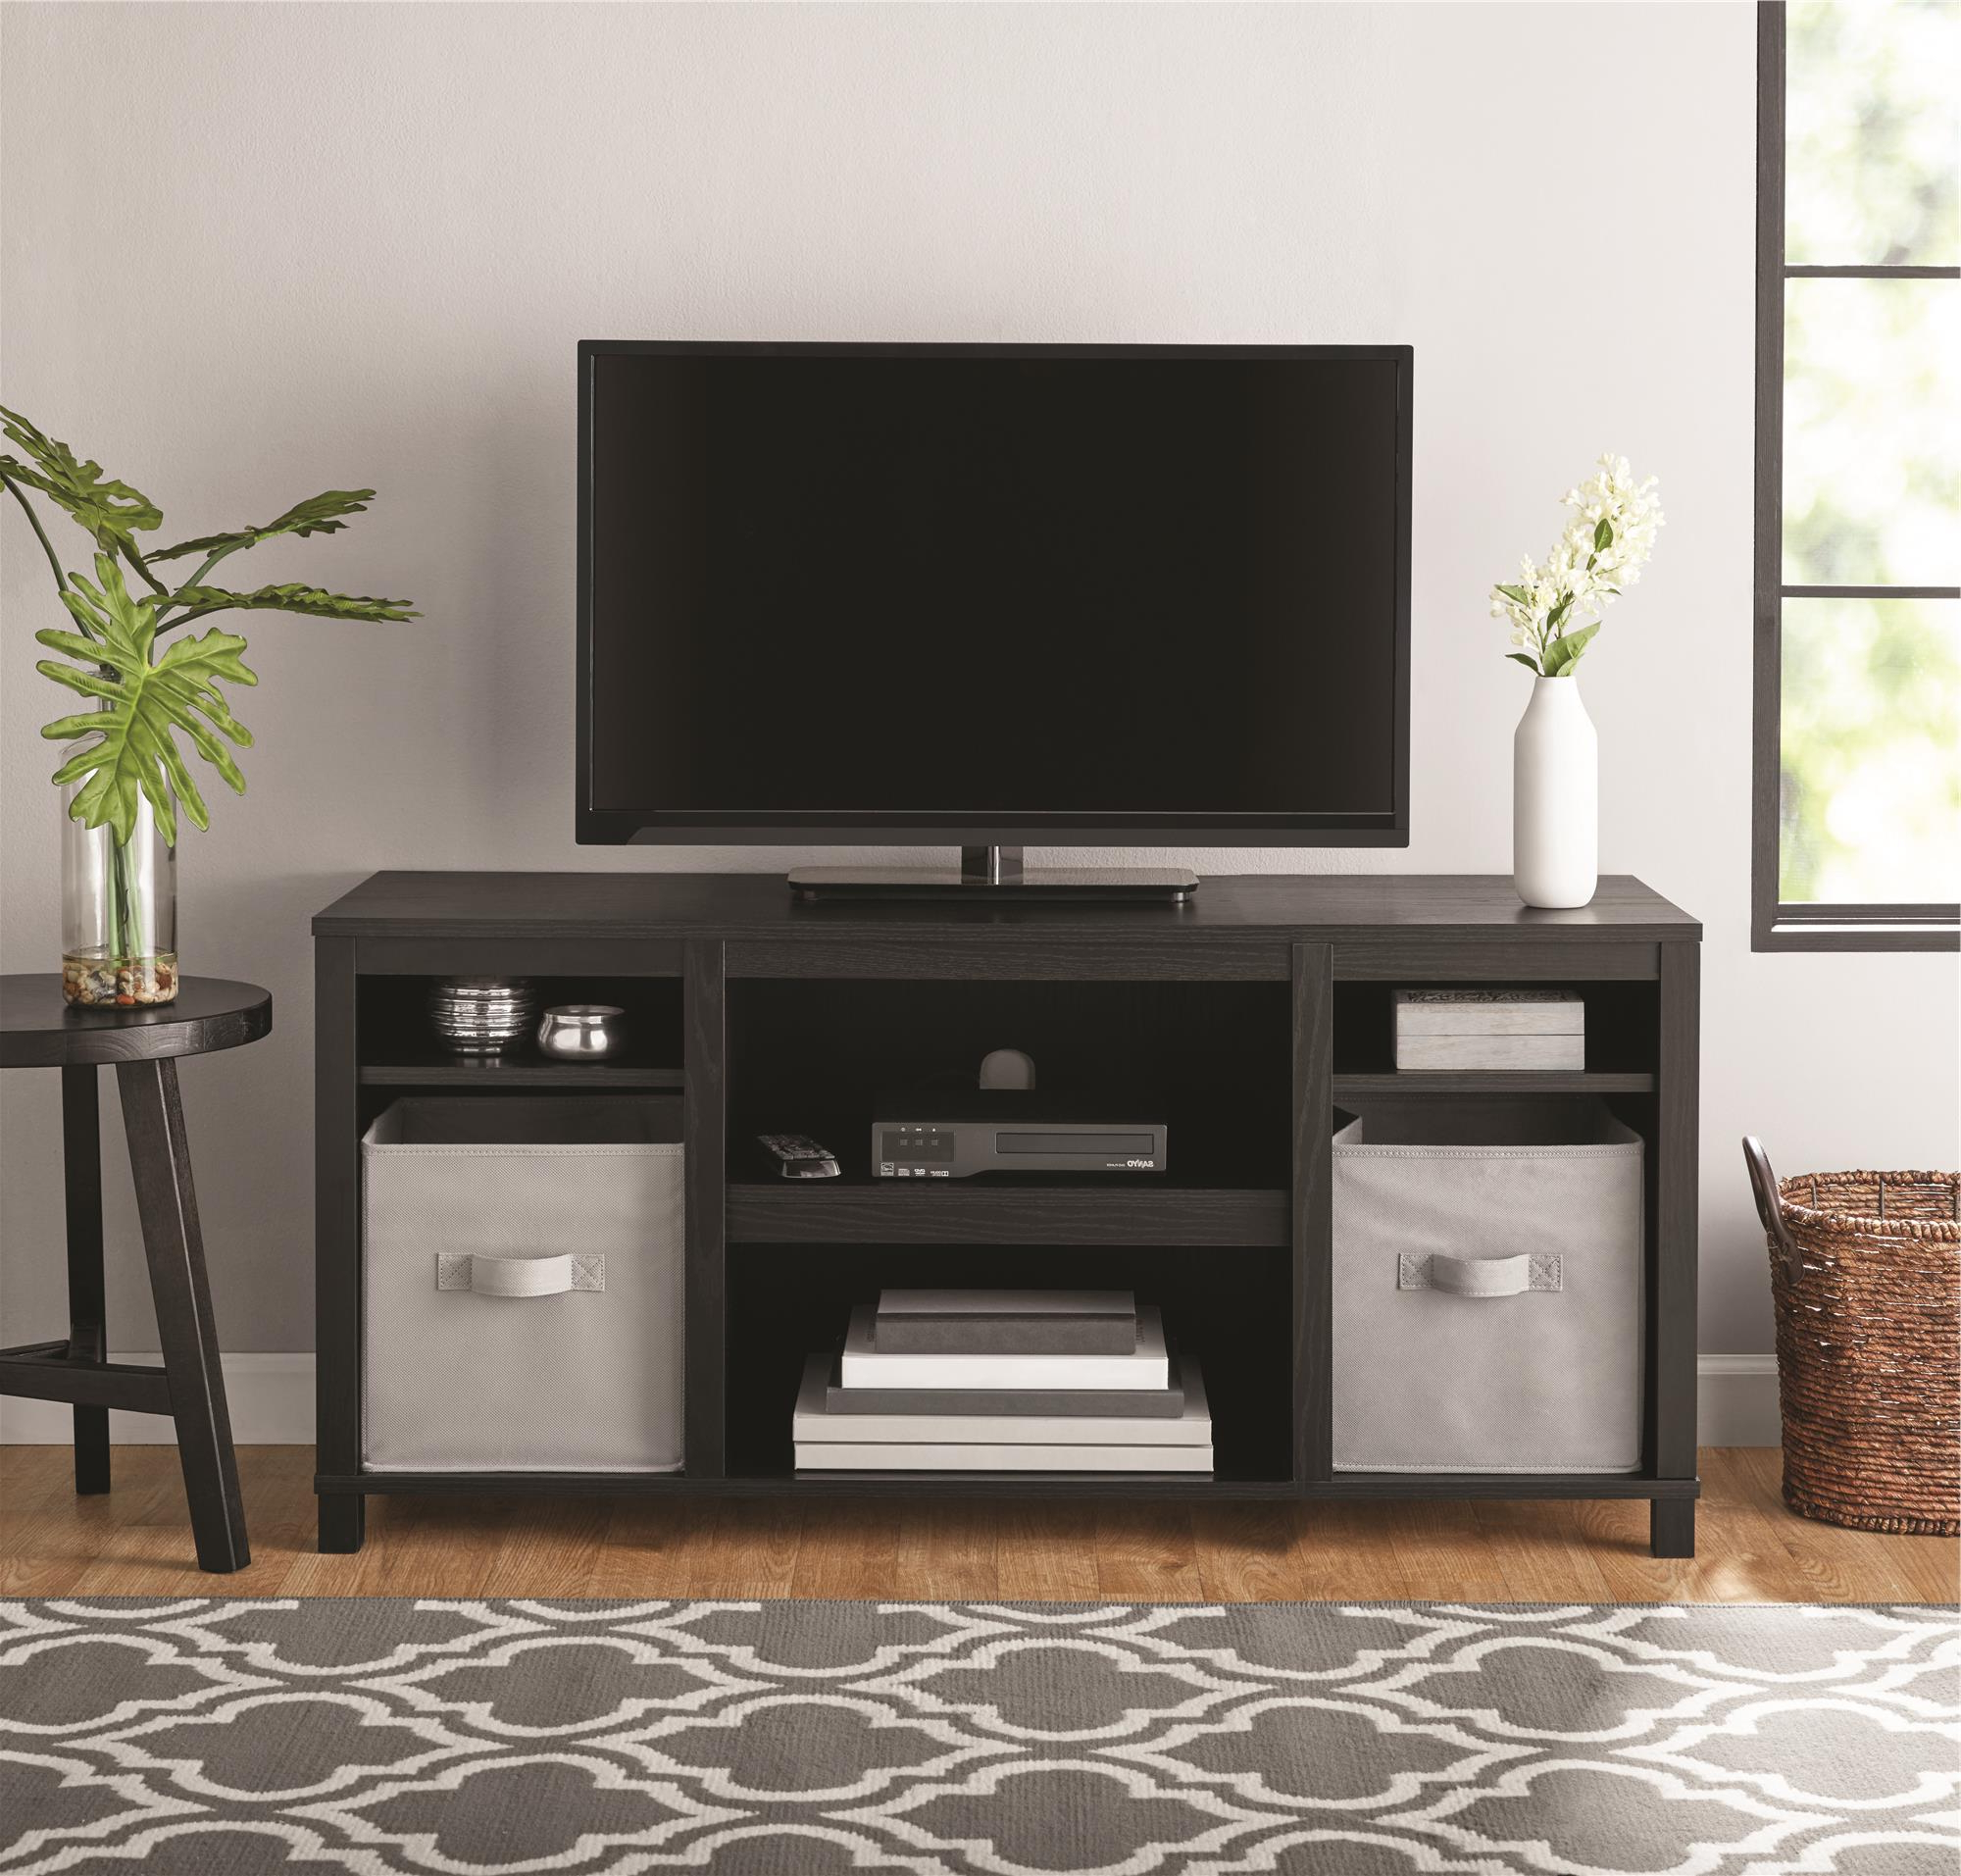 """Mainstays Parsons Tv Stand For Tvs Up To 50"""", True Black Throughout Tv Mount And Tv Stands For Tvs Up To 65"""" (View 11 of 20)"""